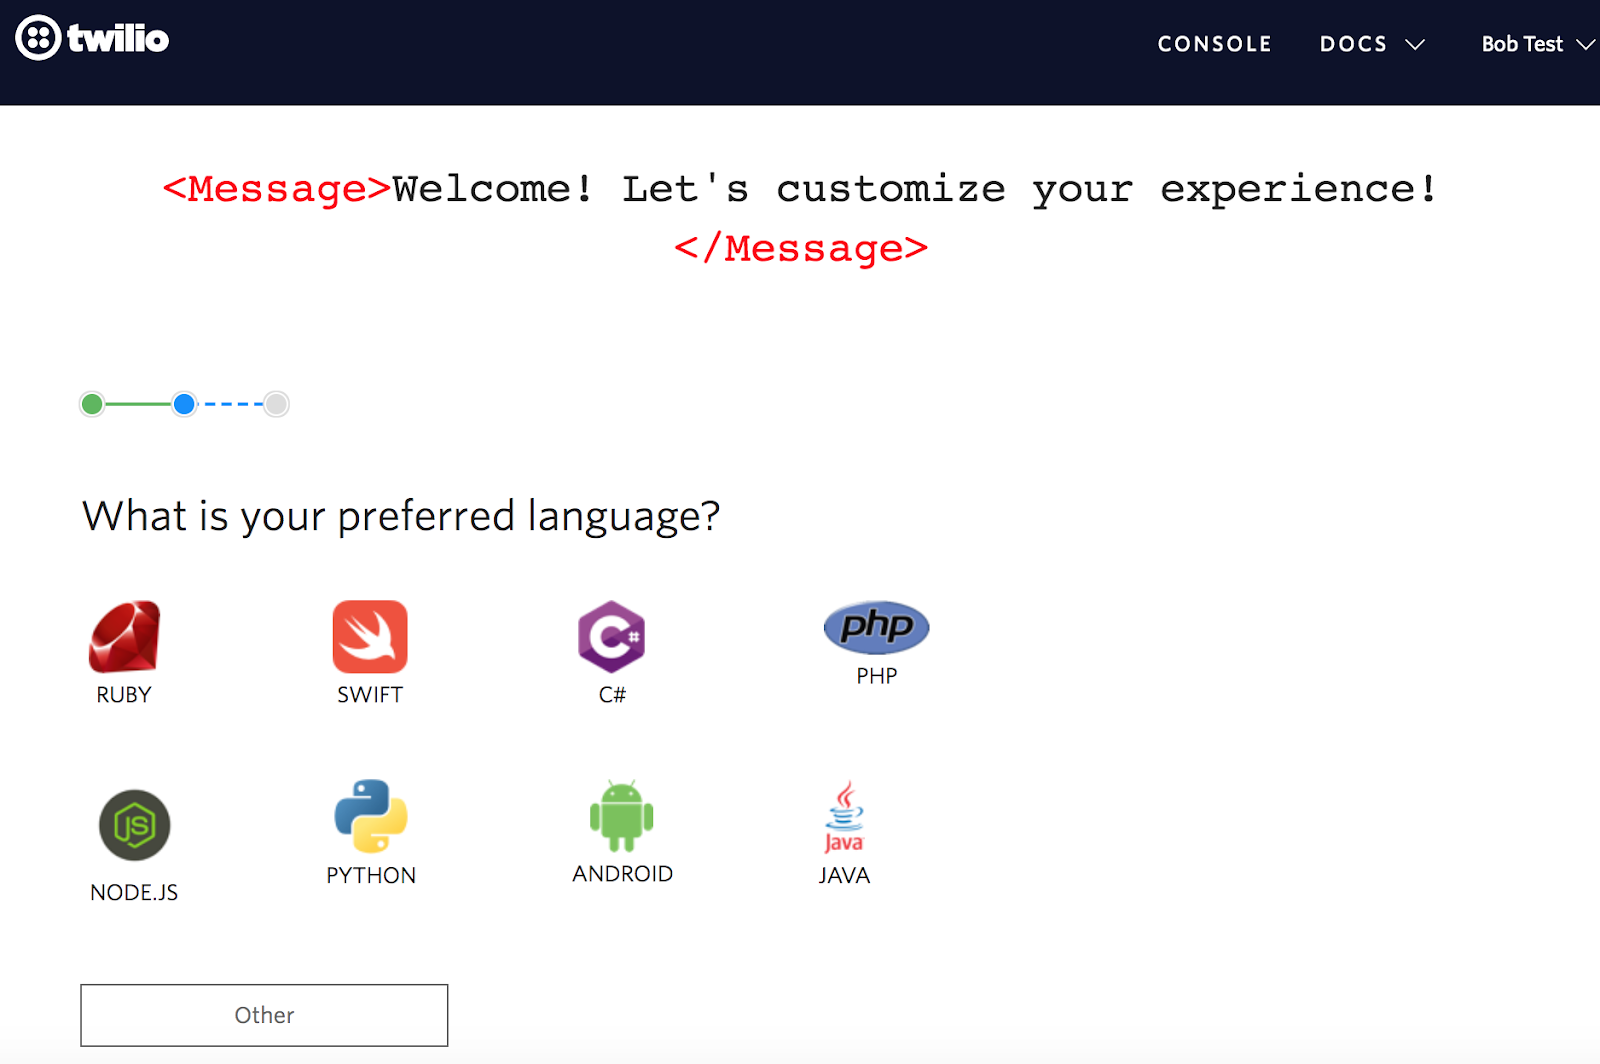 twilio user onboarding flow for developers. step 2 question